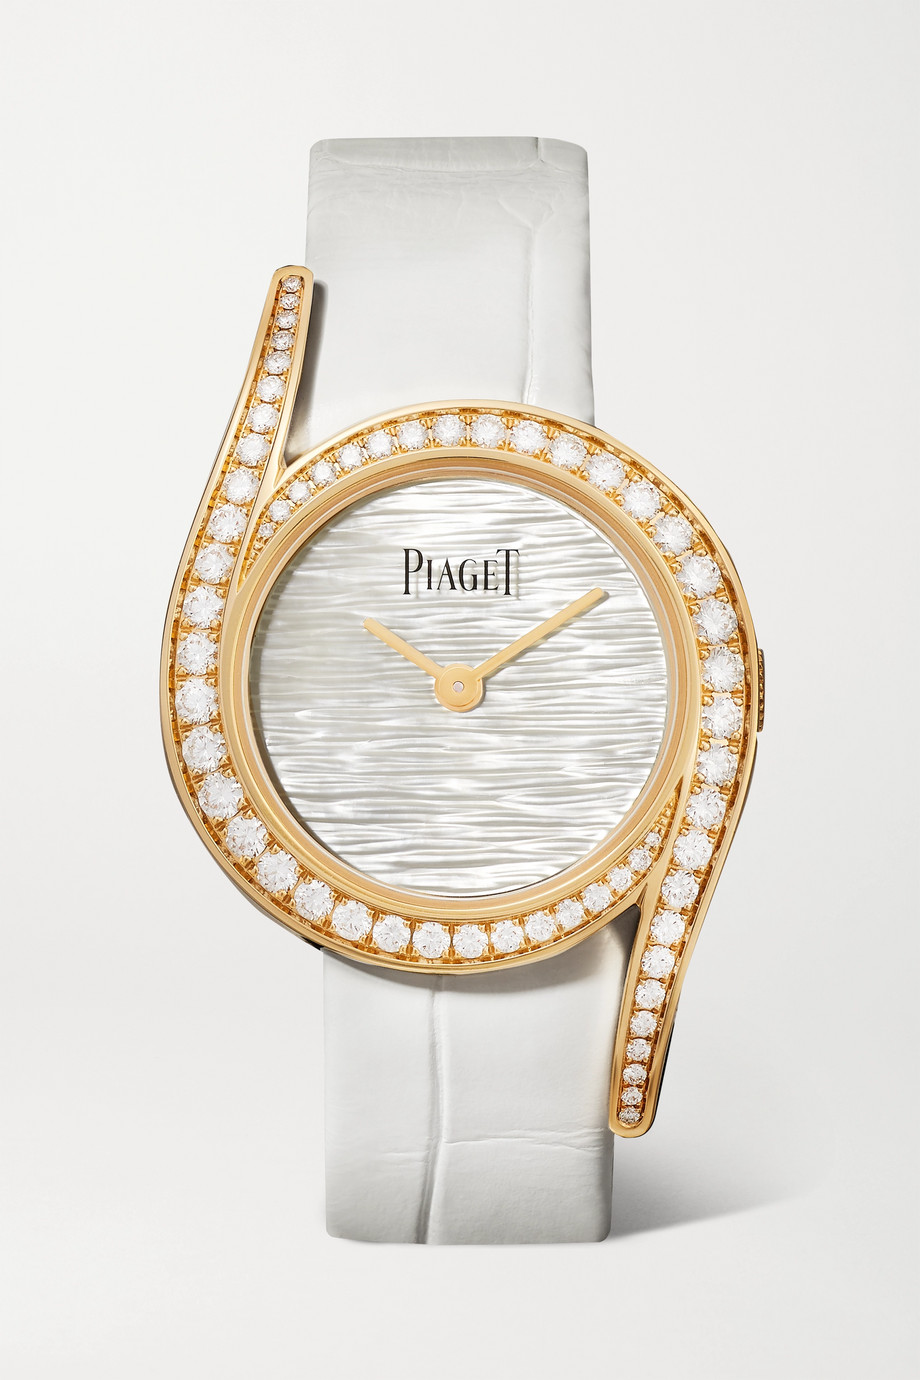 PIAGET Limelight Gala Limited Edition 32mm 18-karat rose gold, alligator, mother-of-pearl and diamond watch